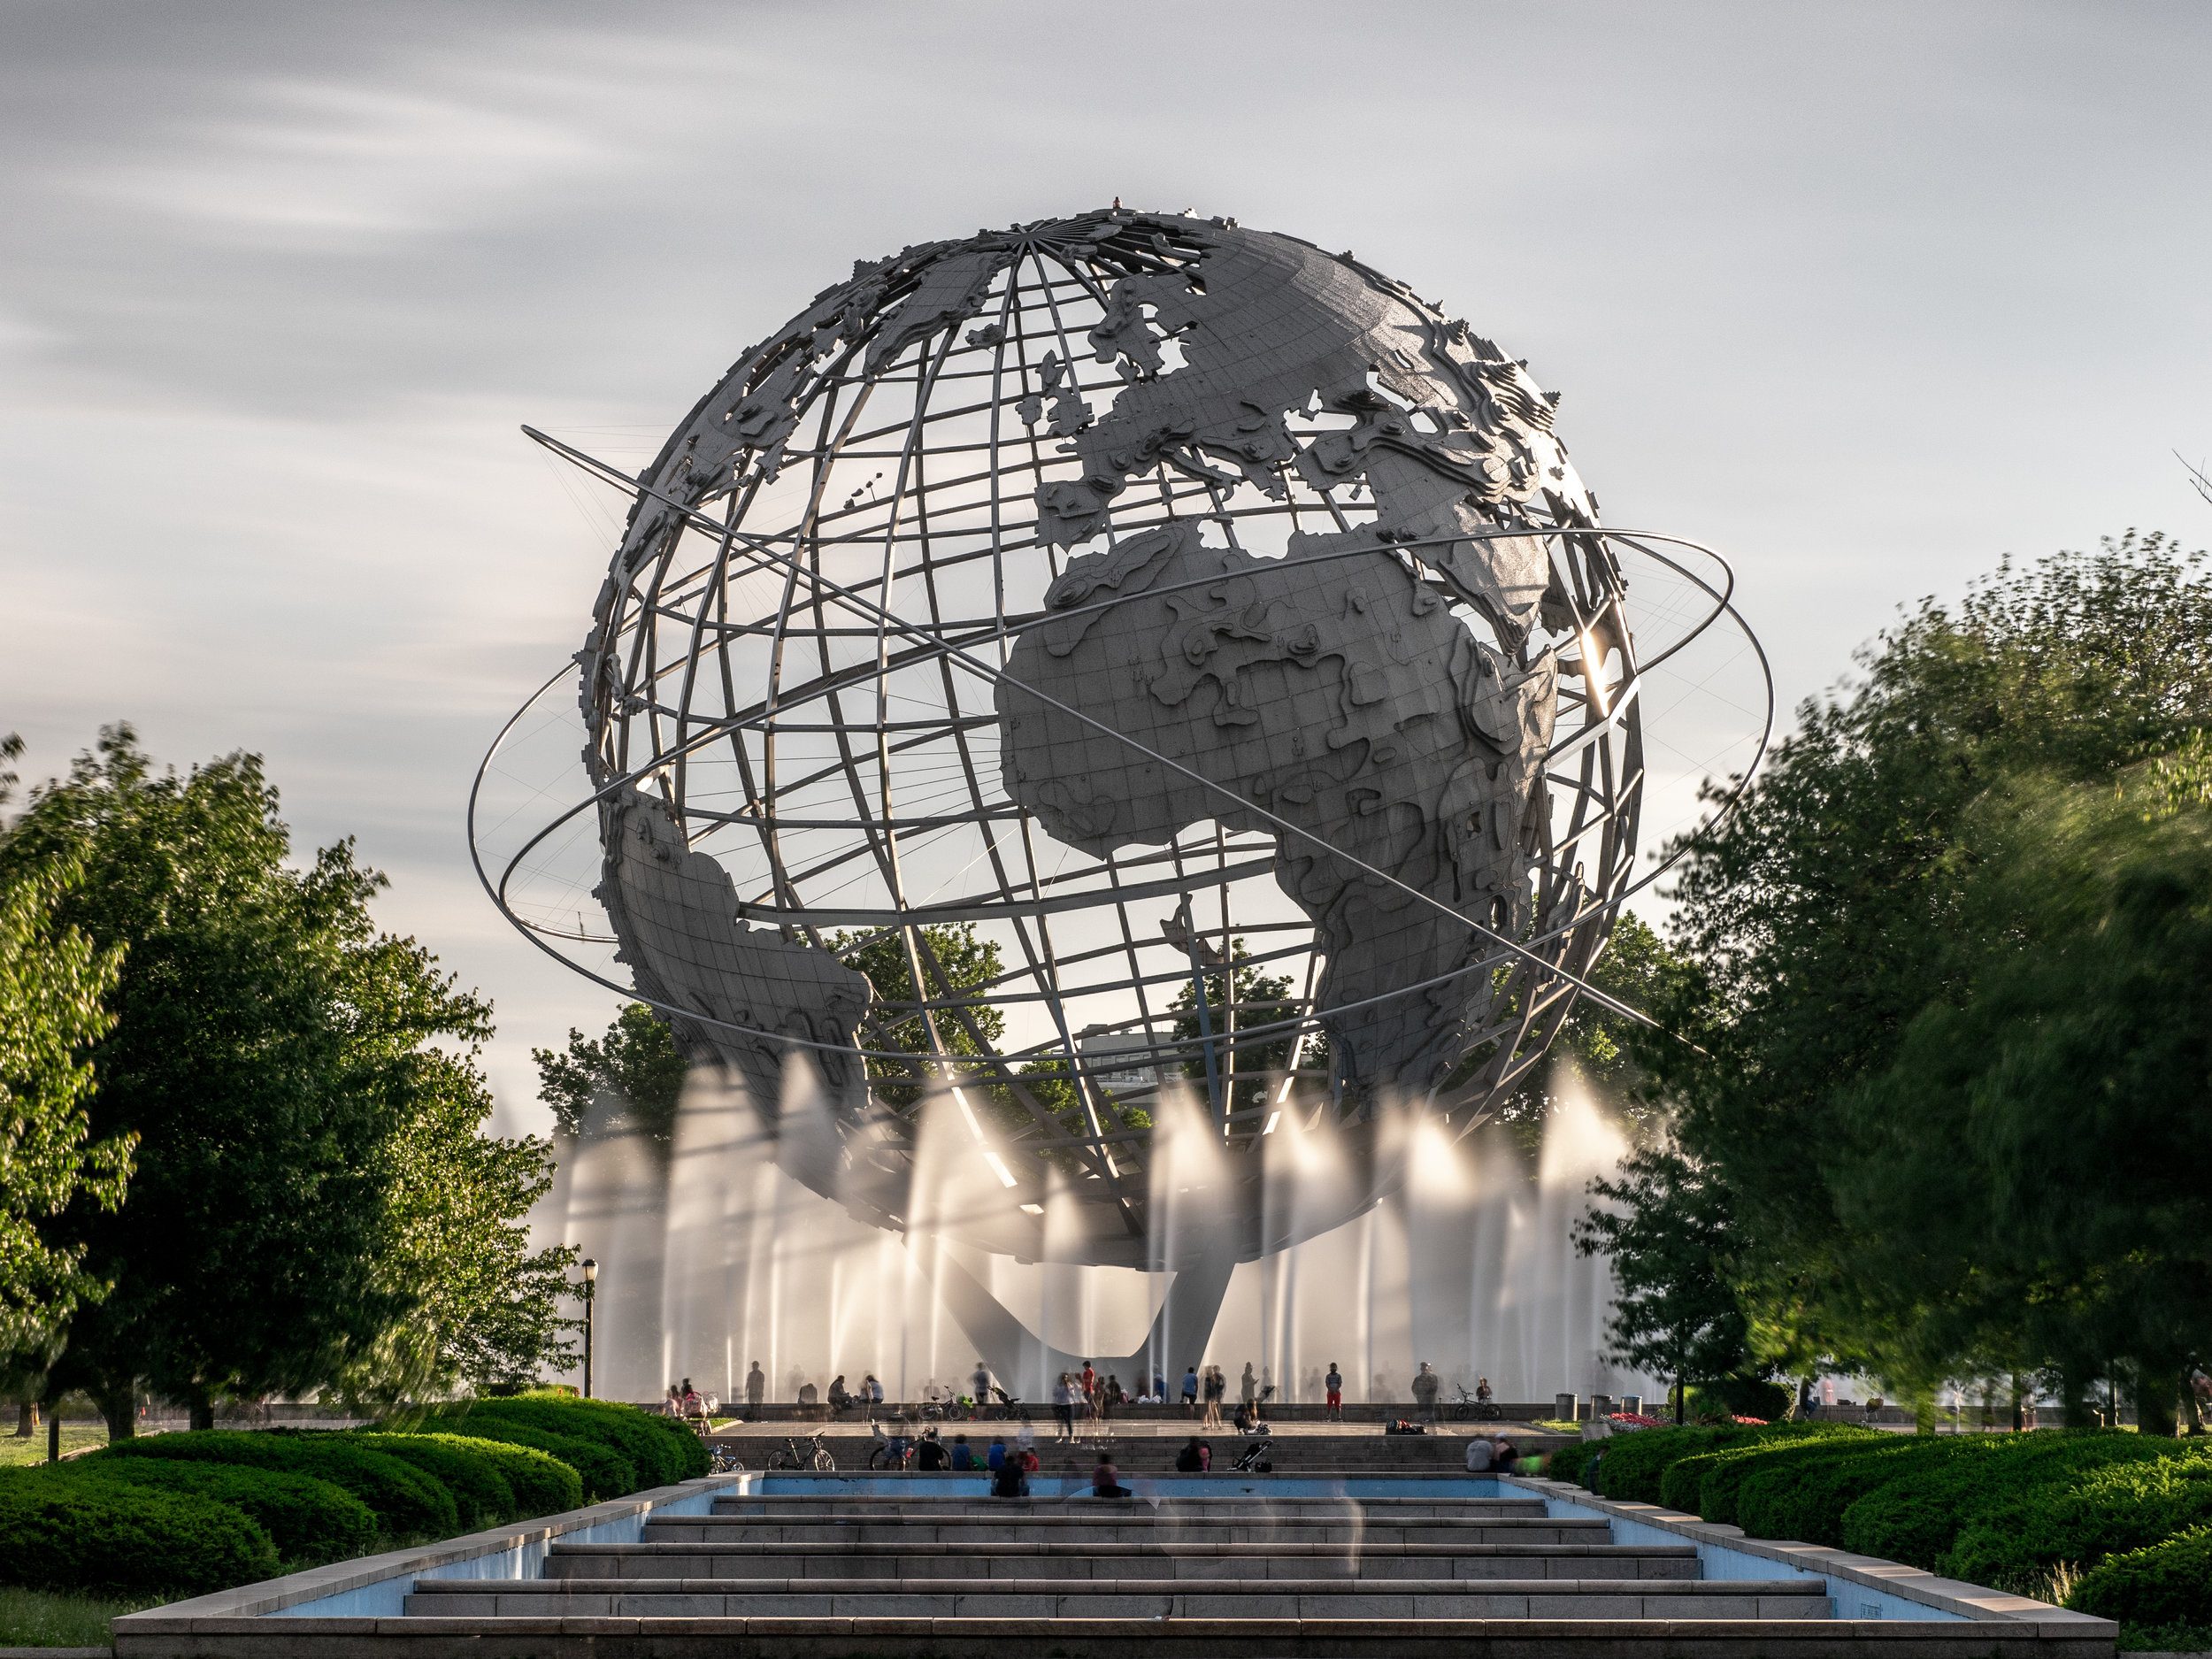 The Unisphere — symbol of the most global place on the face of the Earth, the polyglot New York City borough of Queens. It's the birthplace of President Donald J. Trump and part of it is in Representative Alexandria Ocasio-Cortez's district.